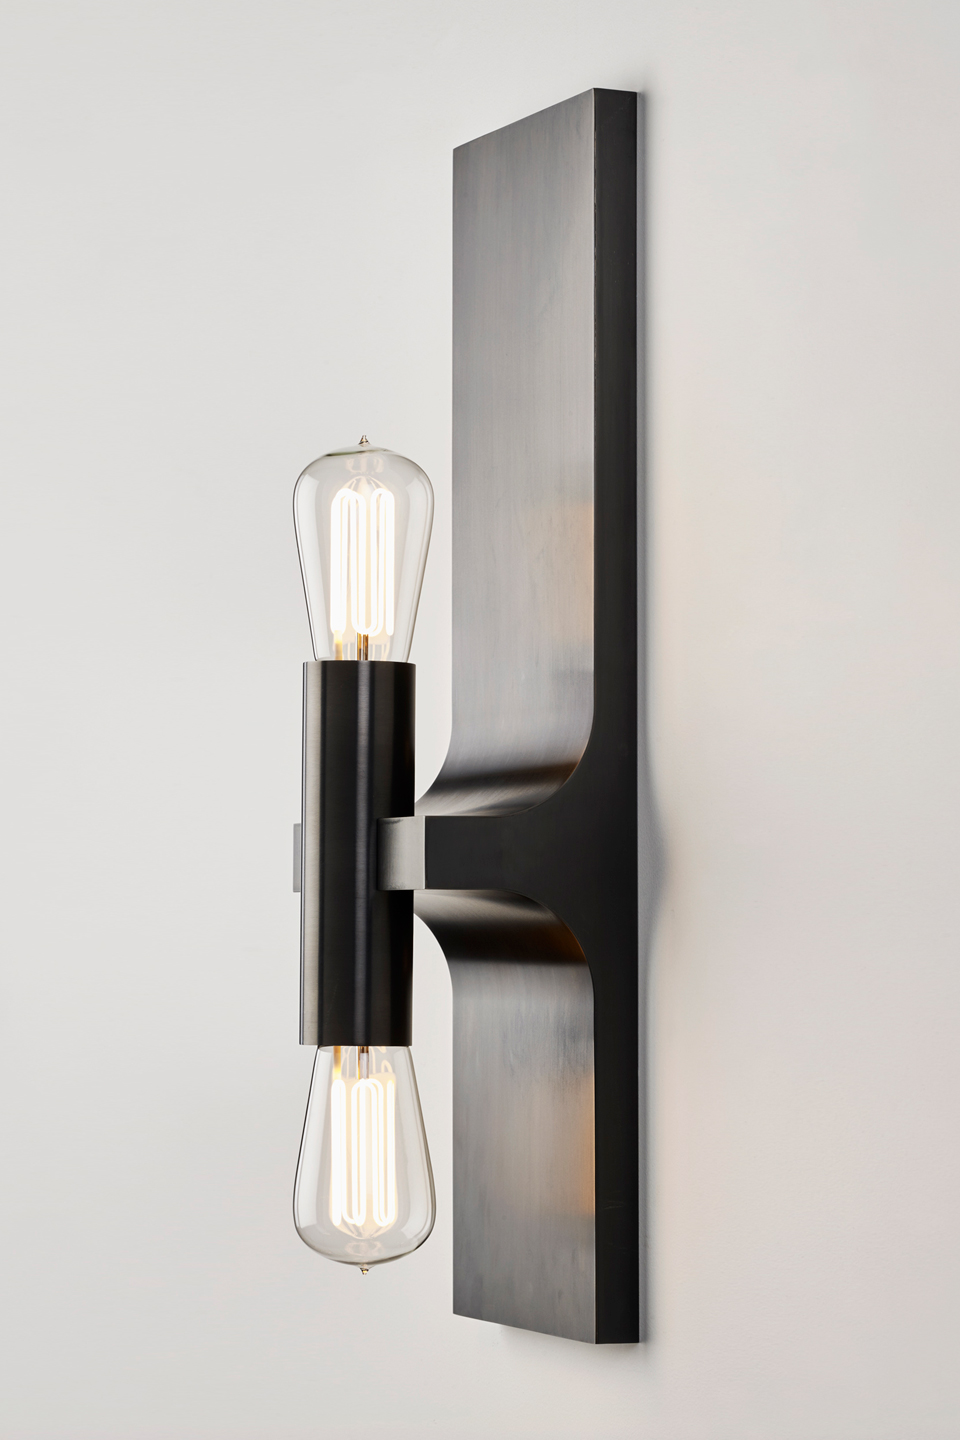 Walcott double wall lamp in black patinated bronze. Nautic by Tekna.